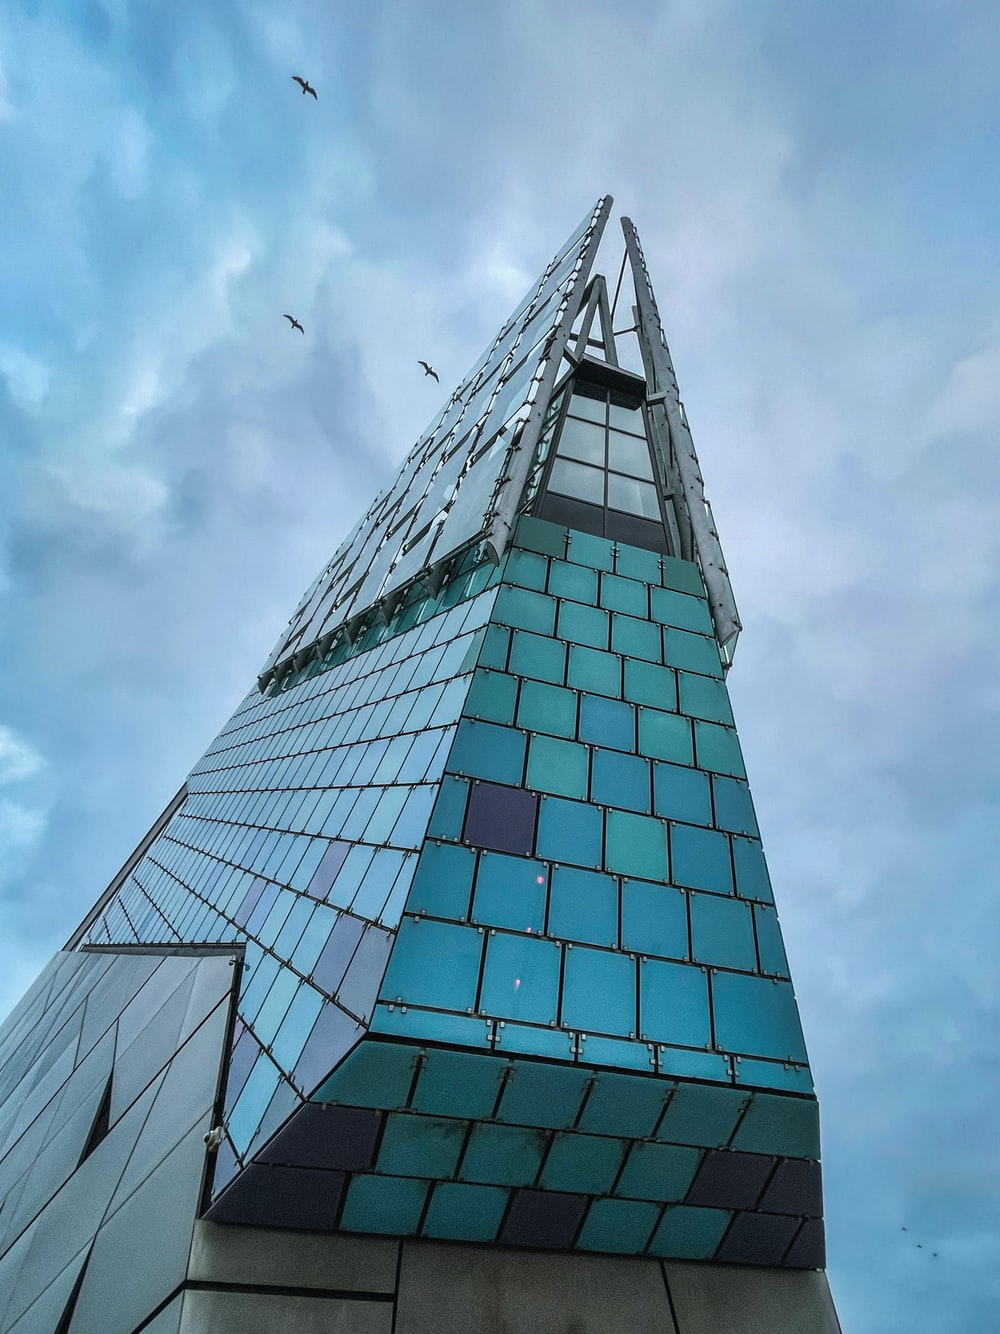 low angle photography of glass building under blue sky during daytime